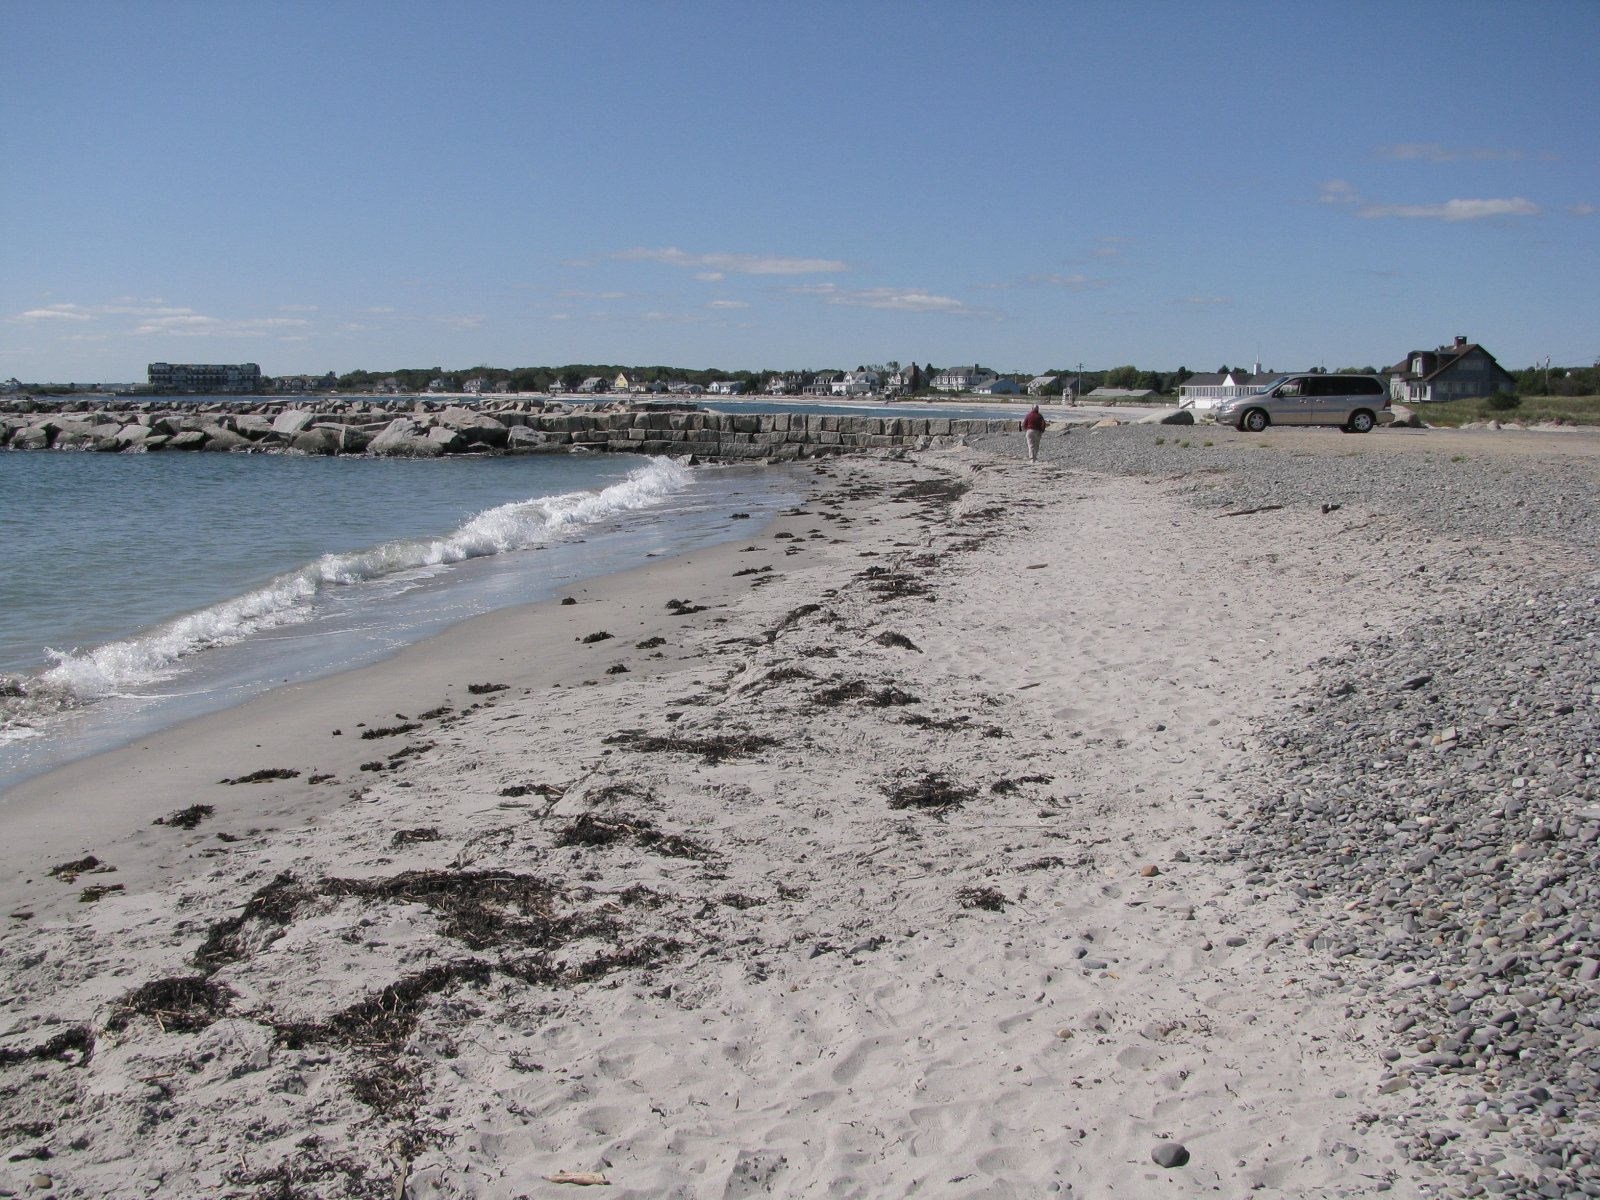 Beach Kennebunkport - see much more at KennebunkportMaineLodging.com Site